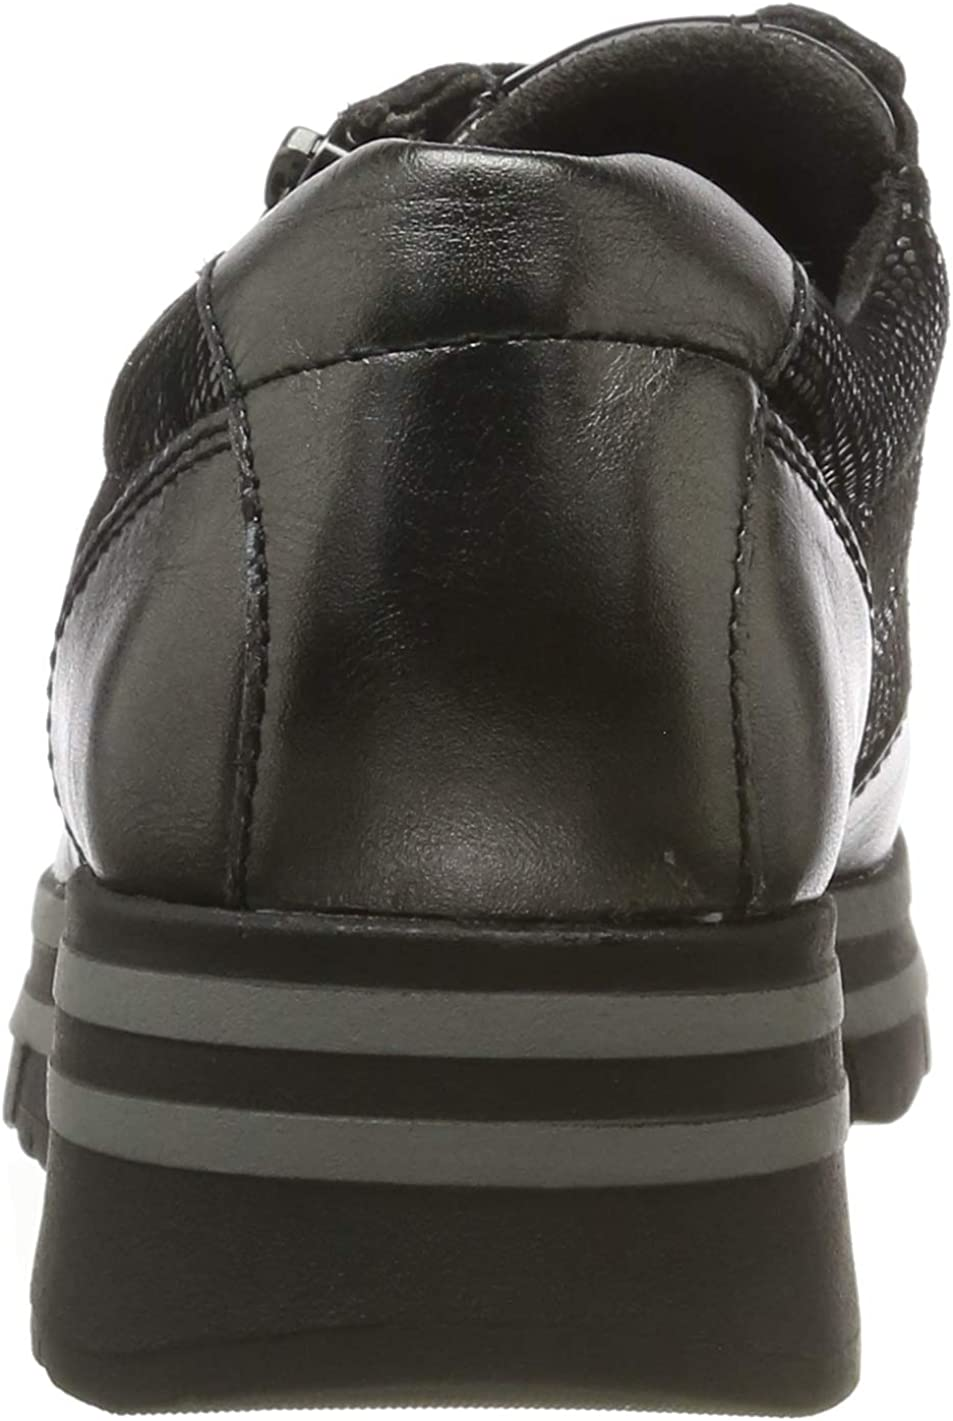 Tamaris Womens Low-Top Sneakers Anthracite Com 234 Grey 7.5 us